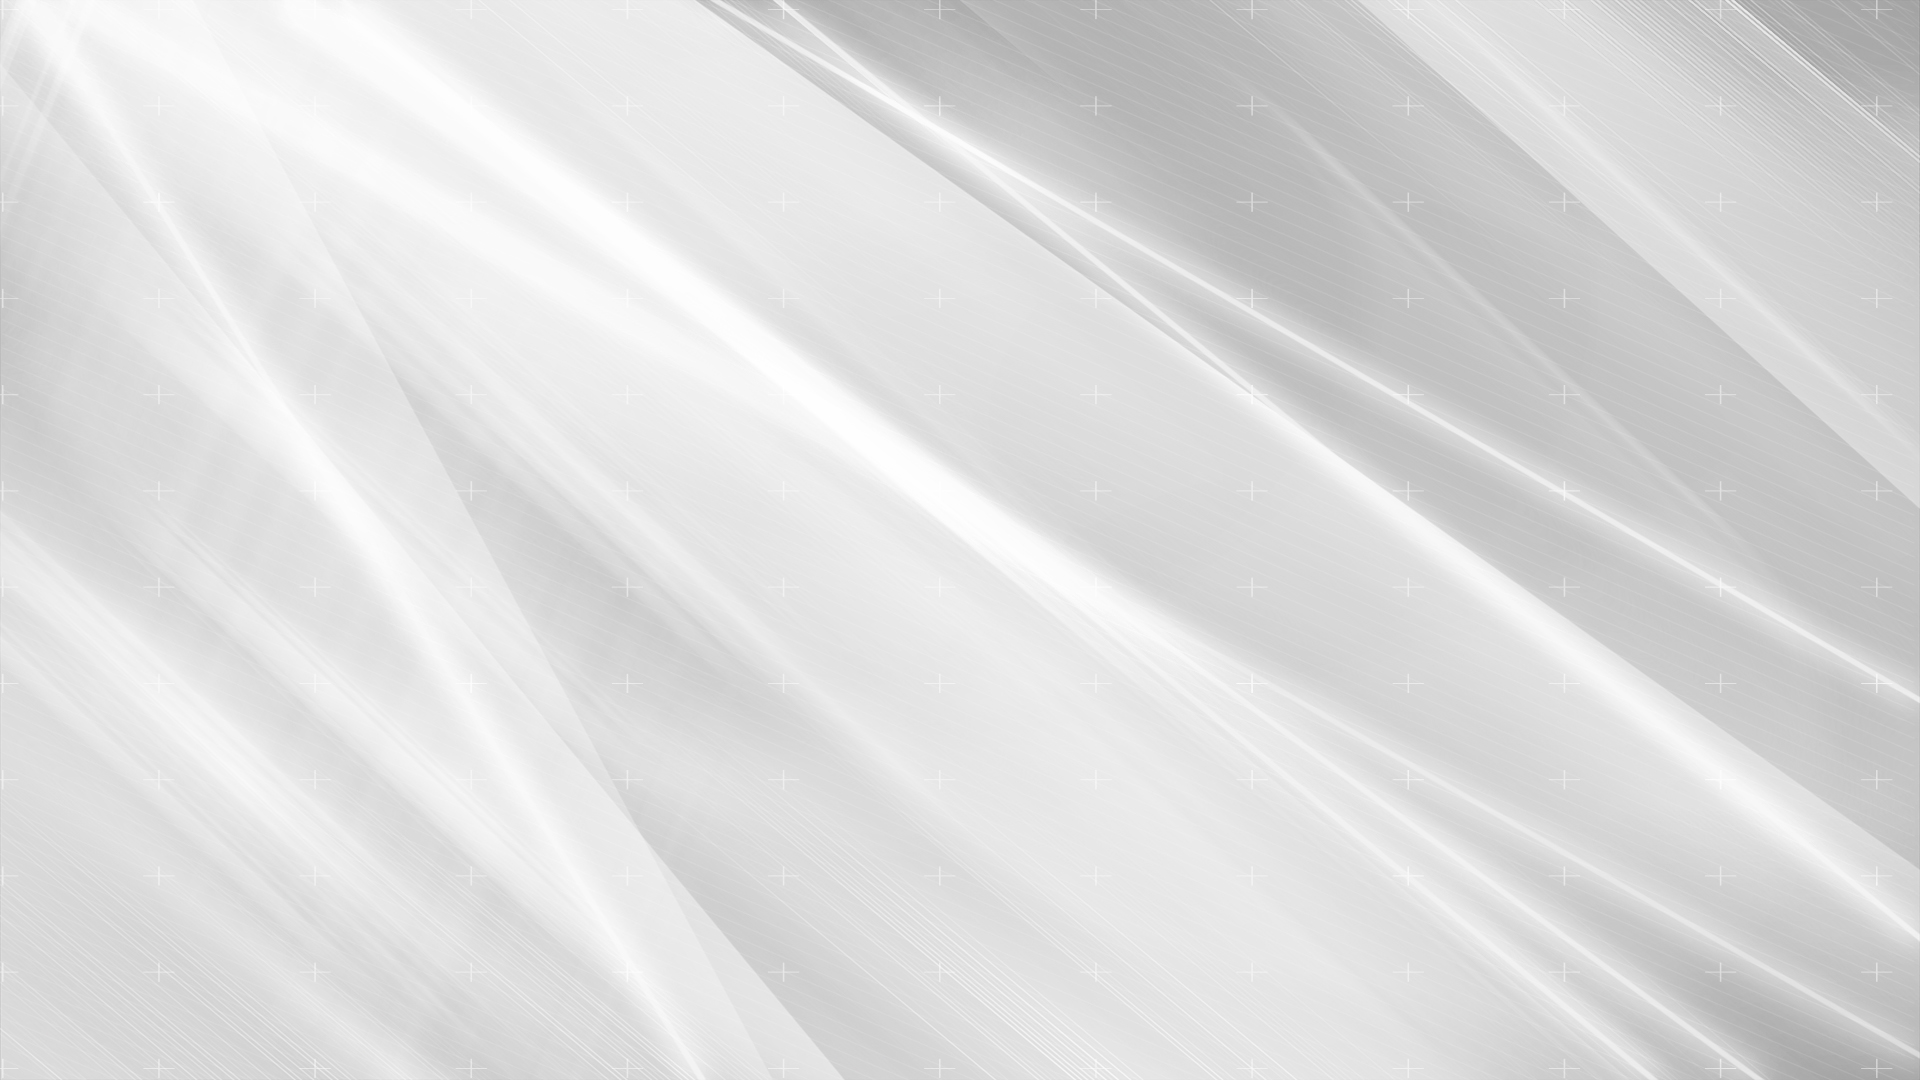 White Abstract wallpaper 1920x1080 74362 1920x1080